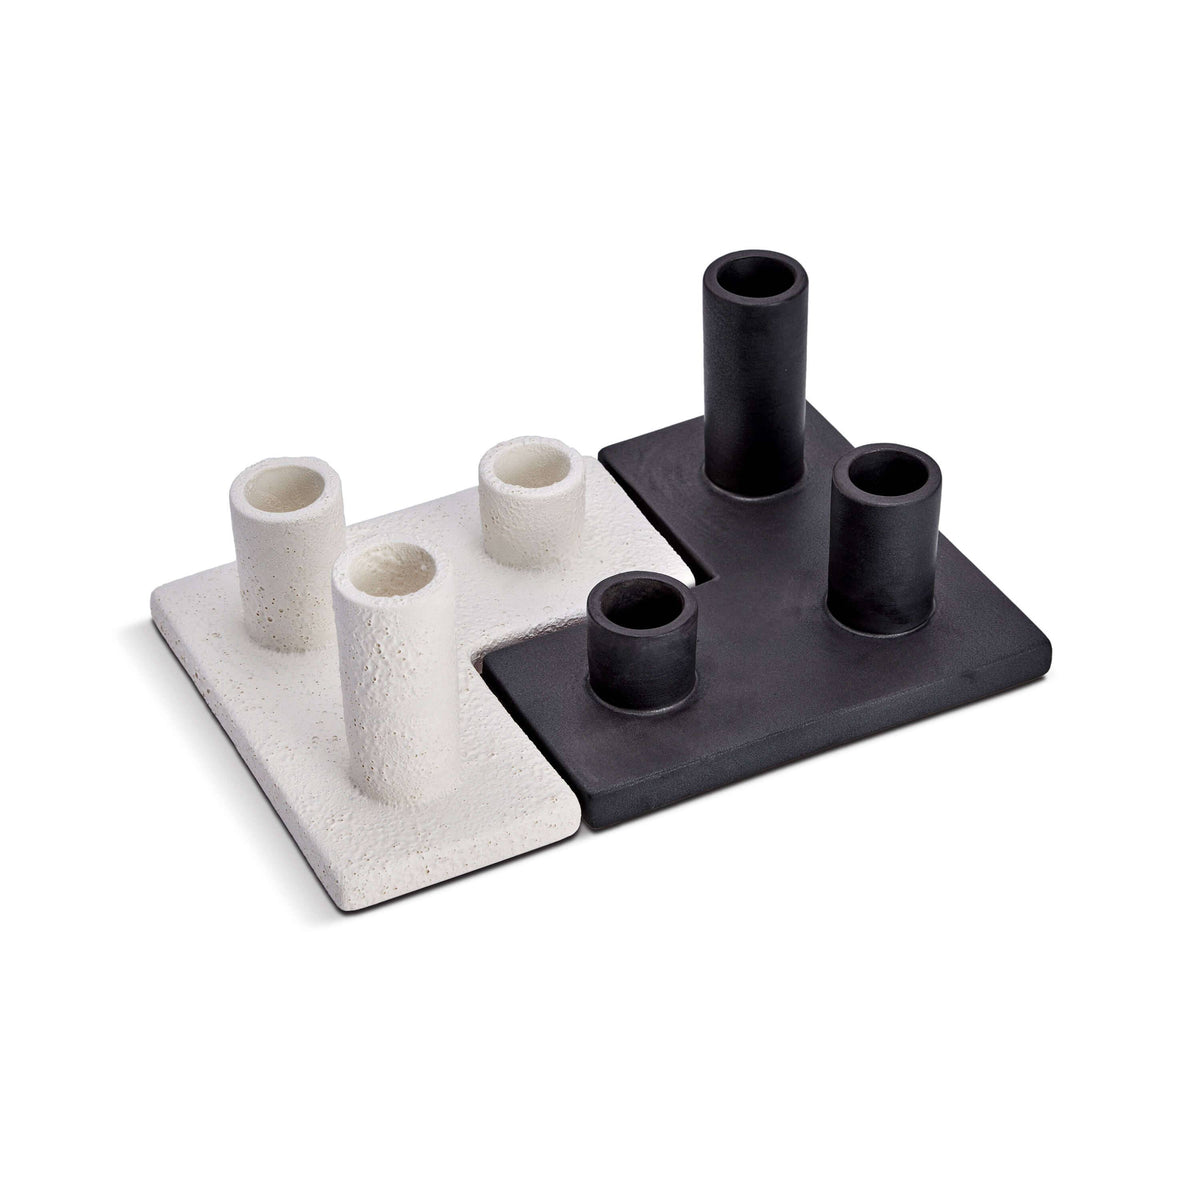 Cubisme Candle Holder White